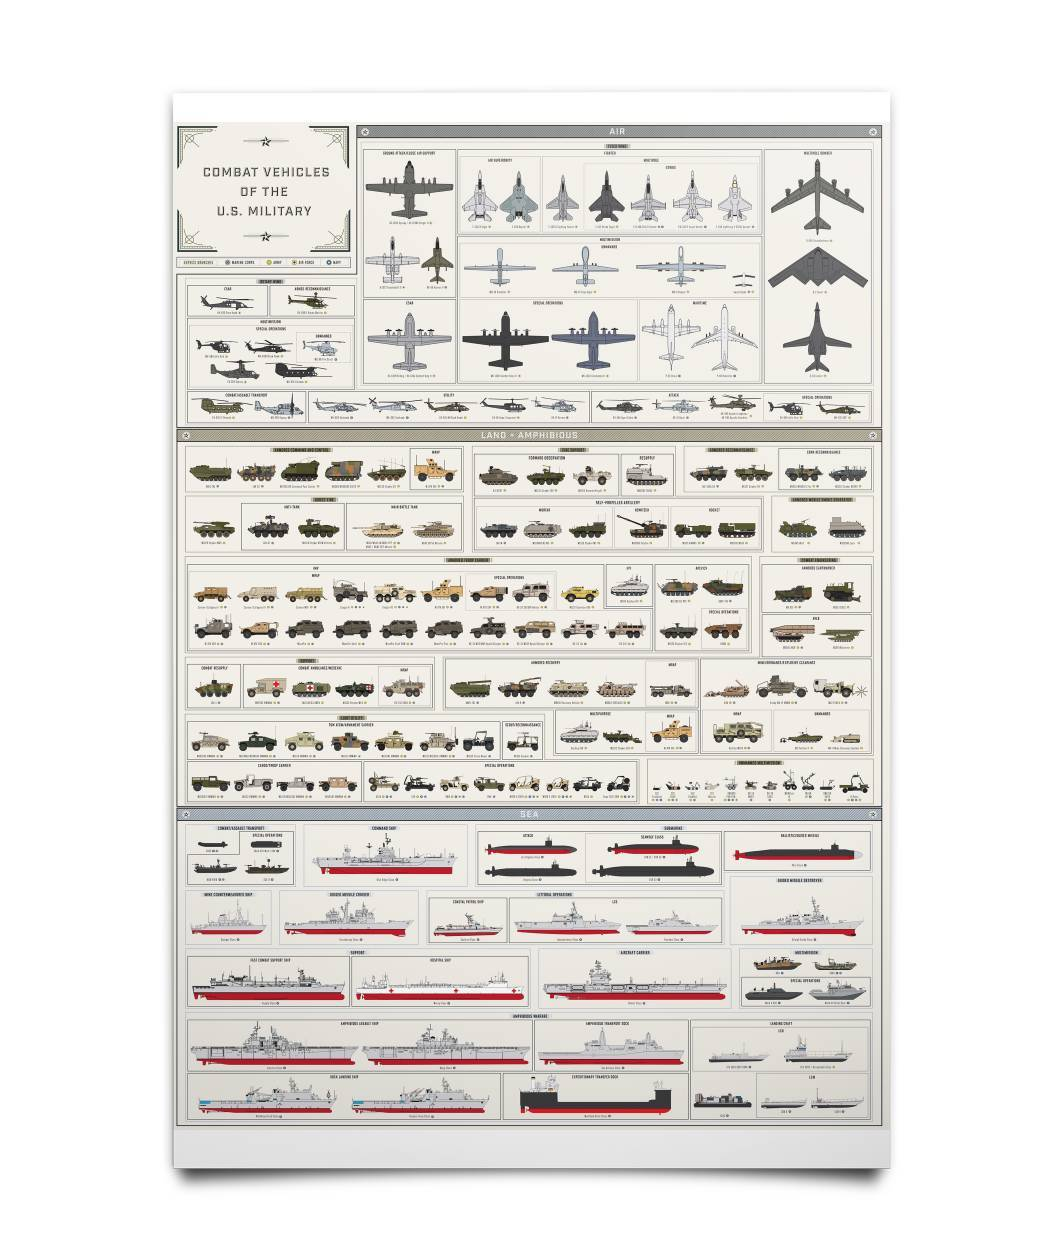 Combat Vehicles Of The U.S. Military Poster